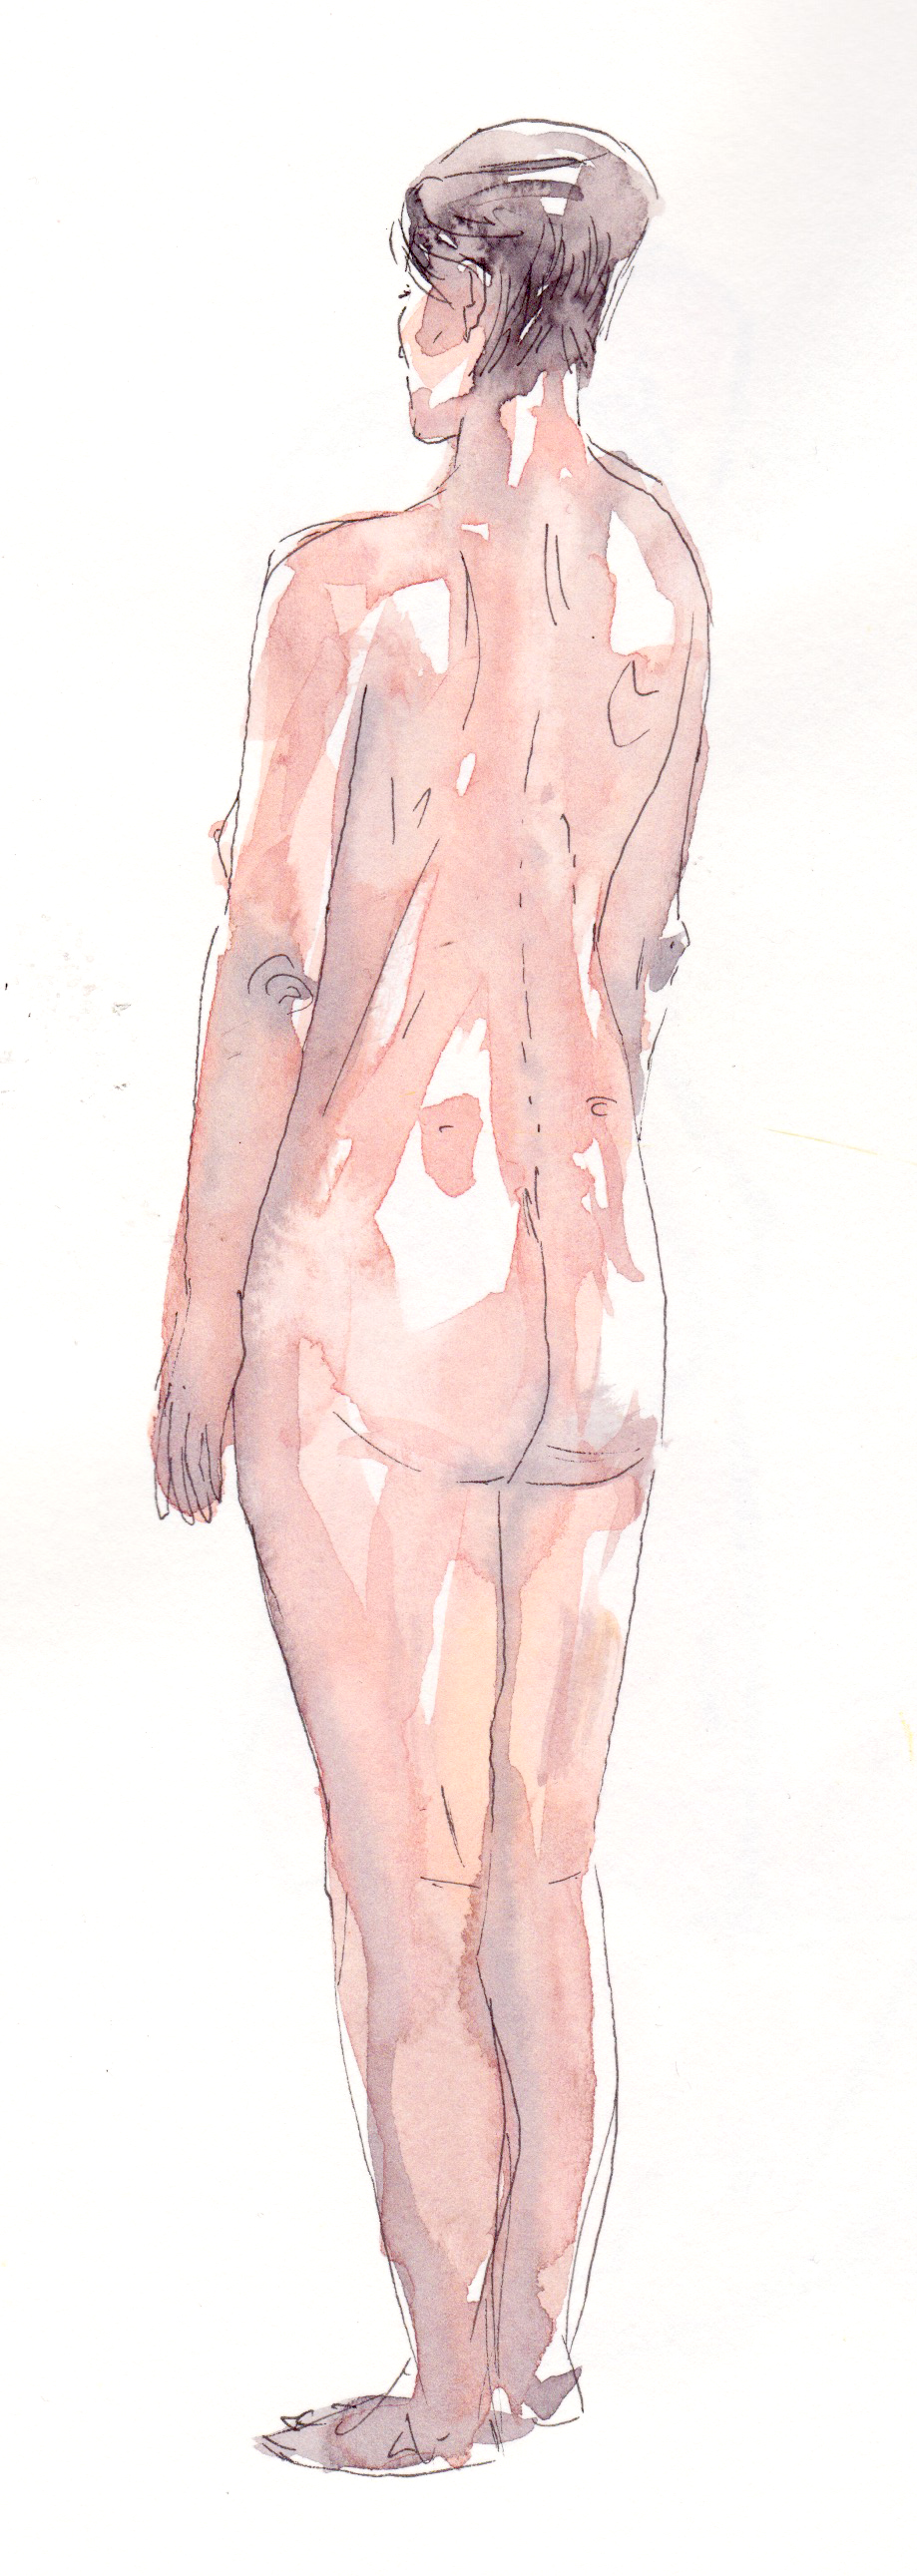 lifedrawing 15